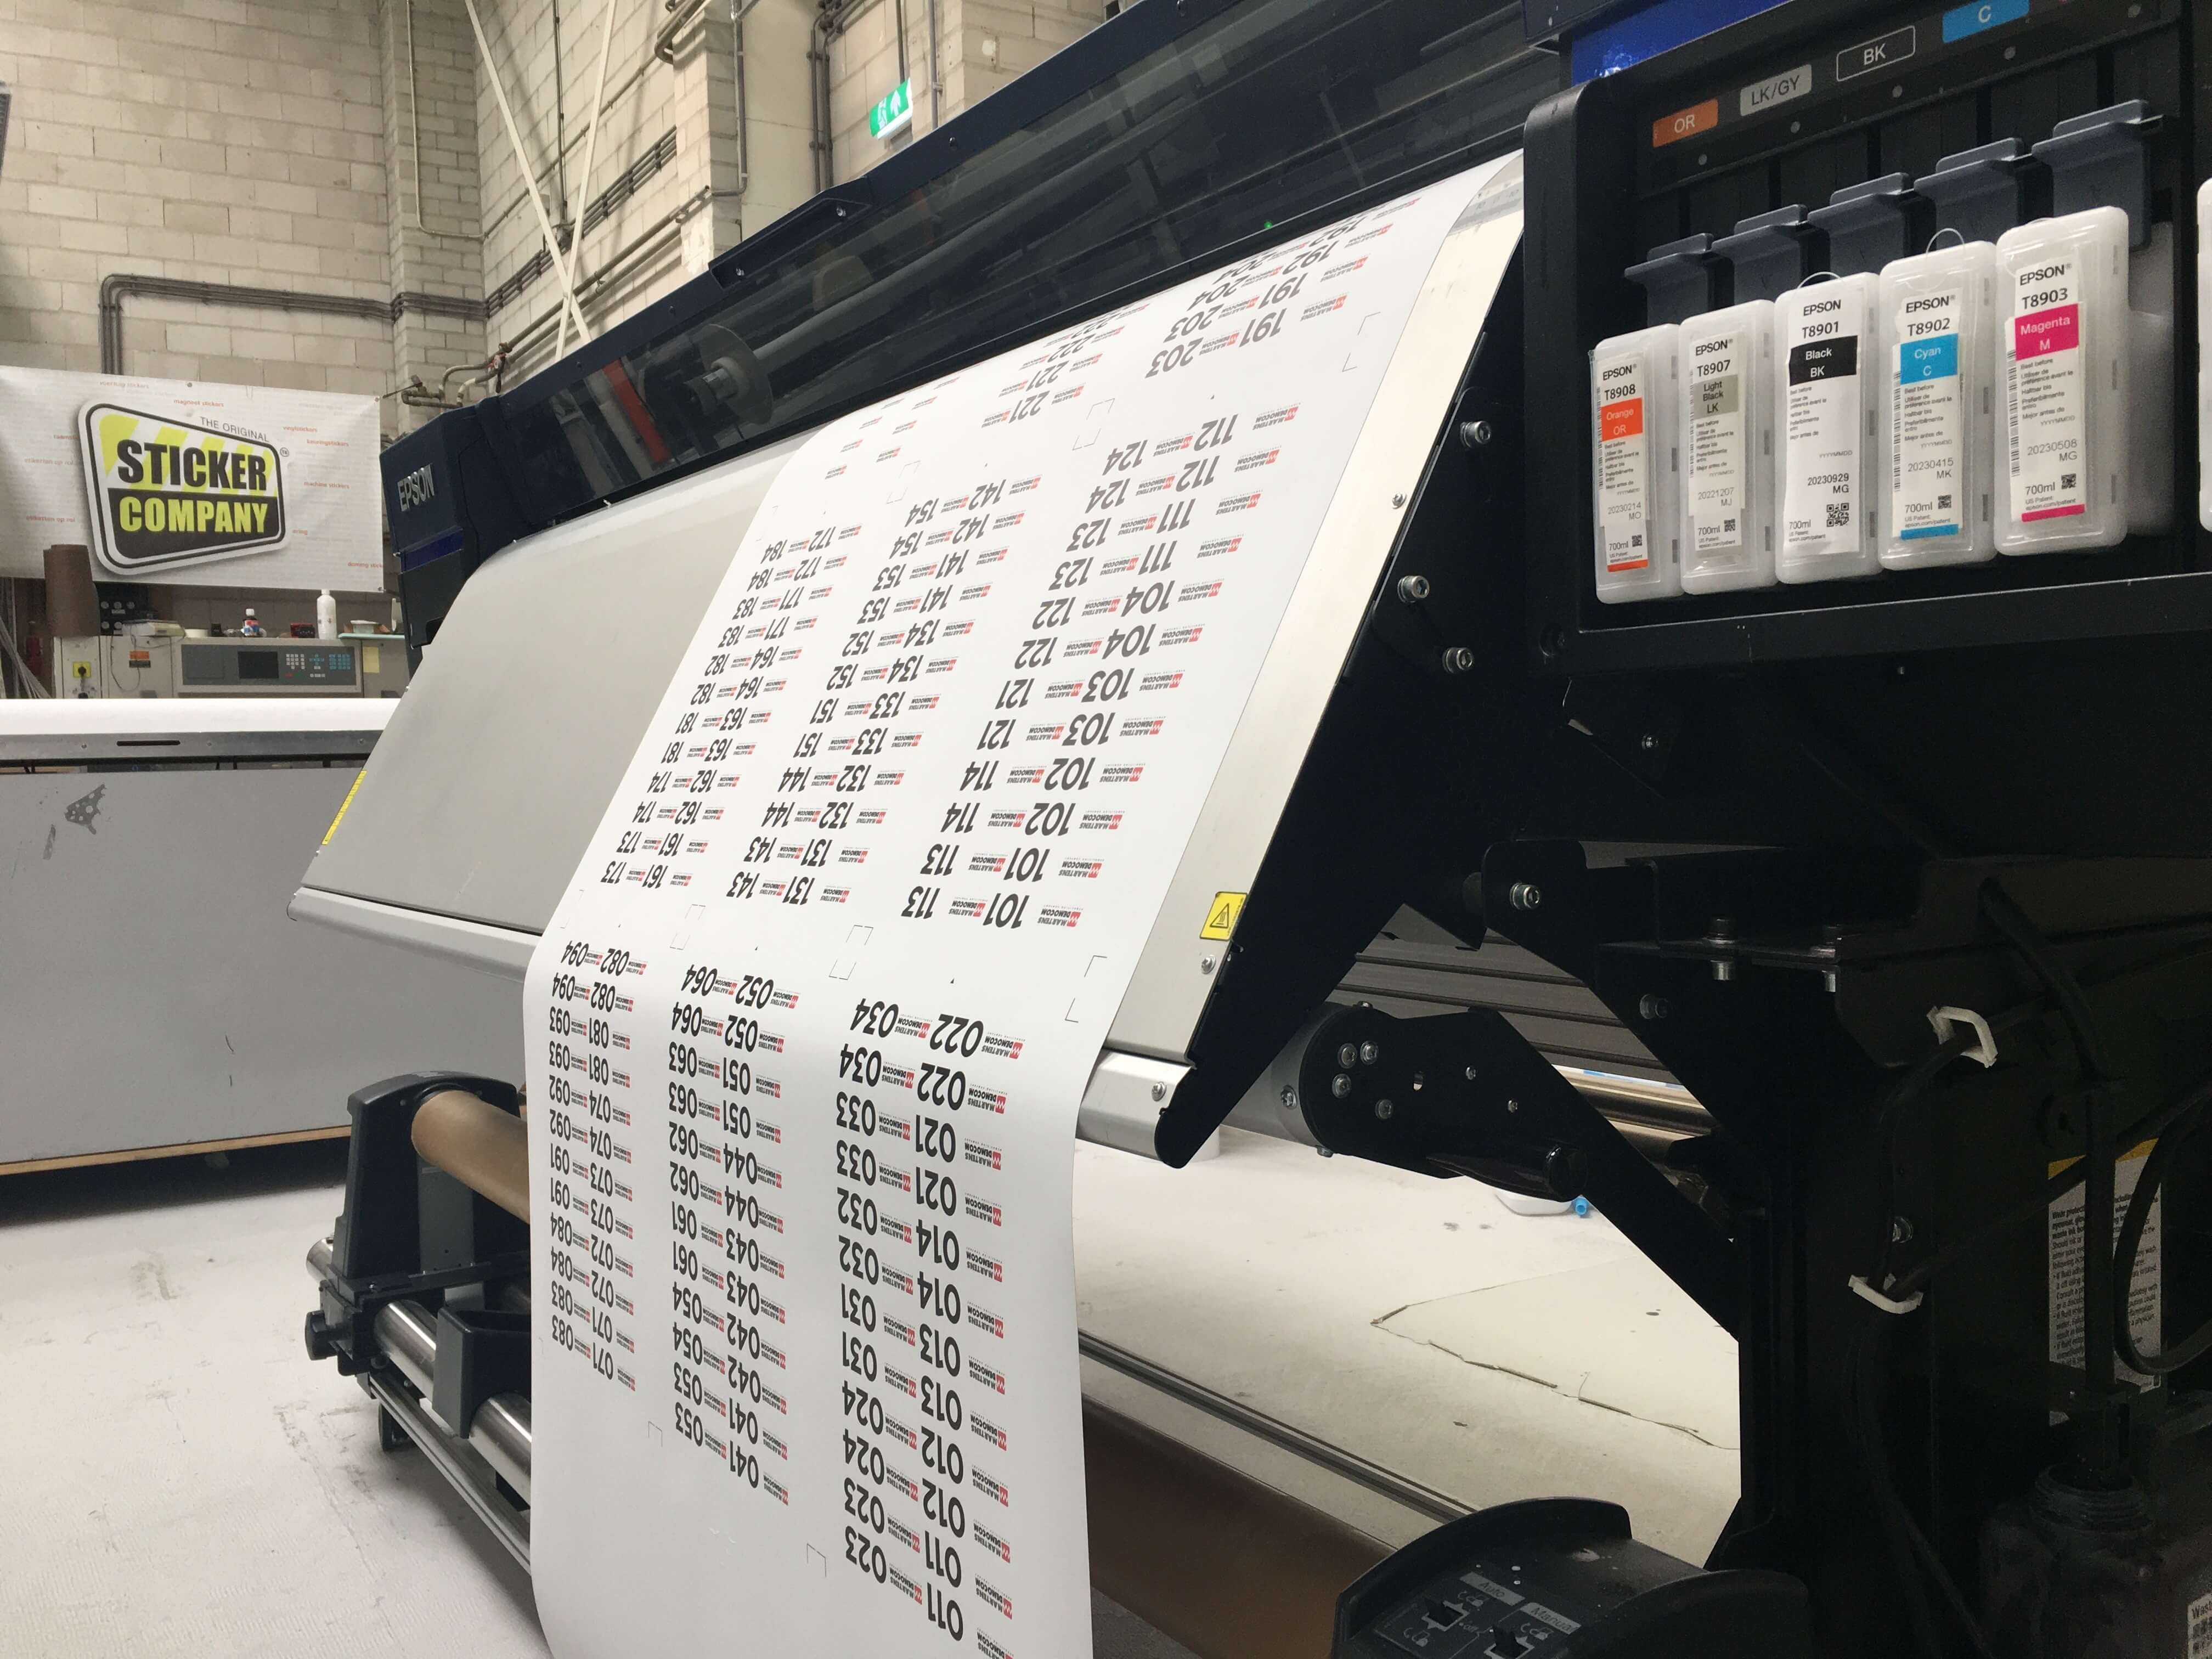 StickerCompany plotter 2